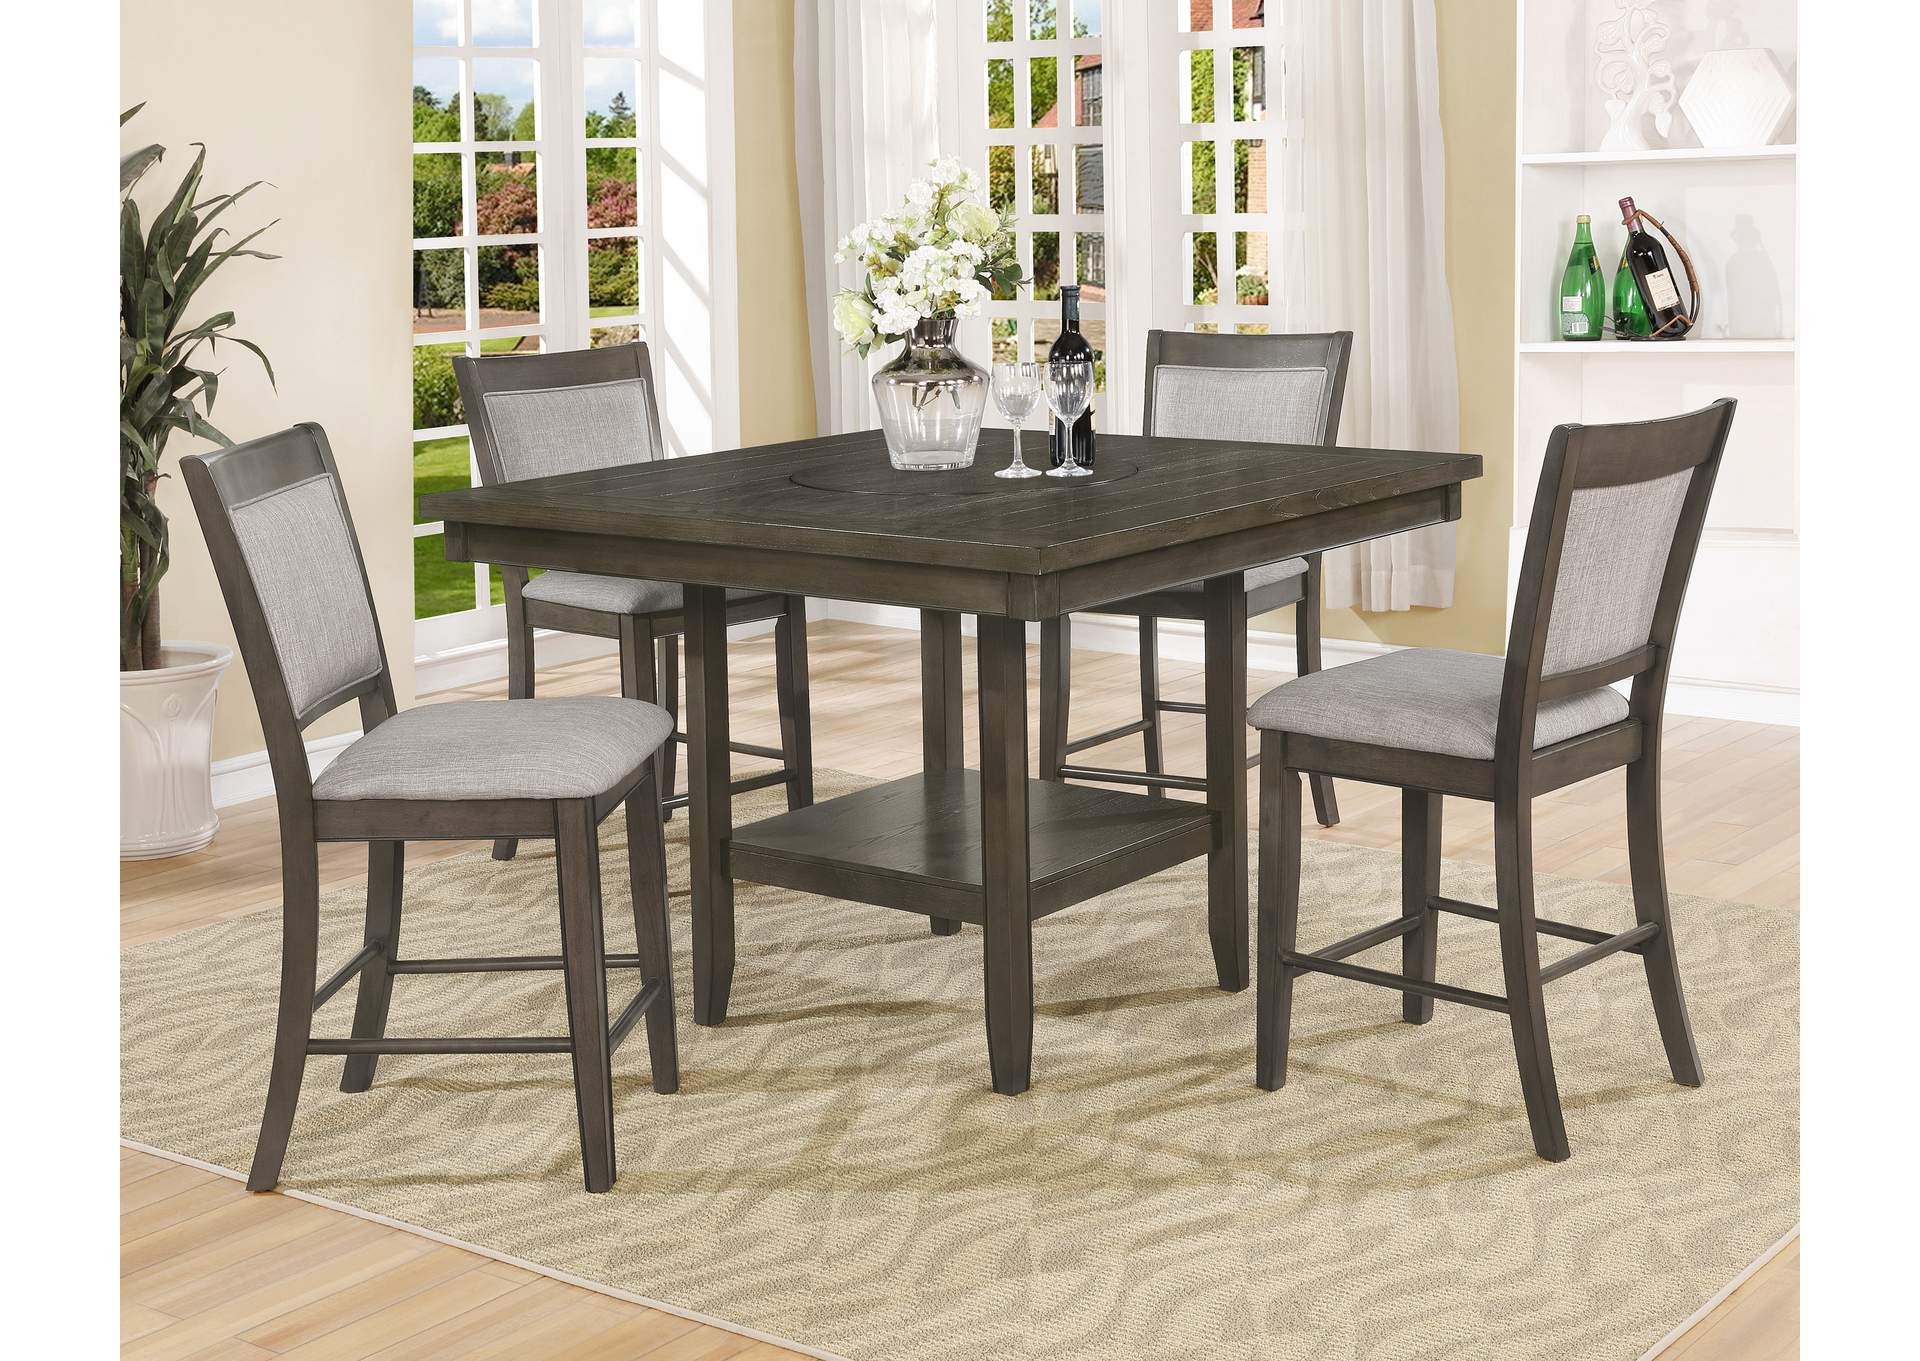 Fulton Gray Counter Height Dining Table w/4 Side Chairs,Crown Mark